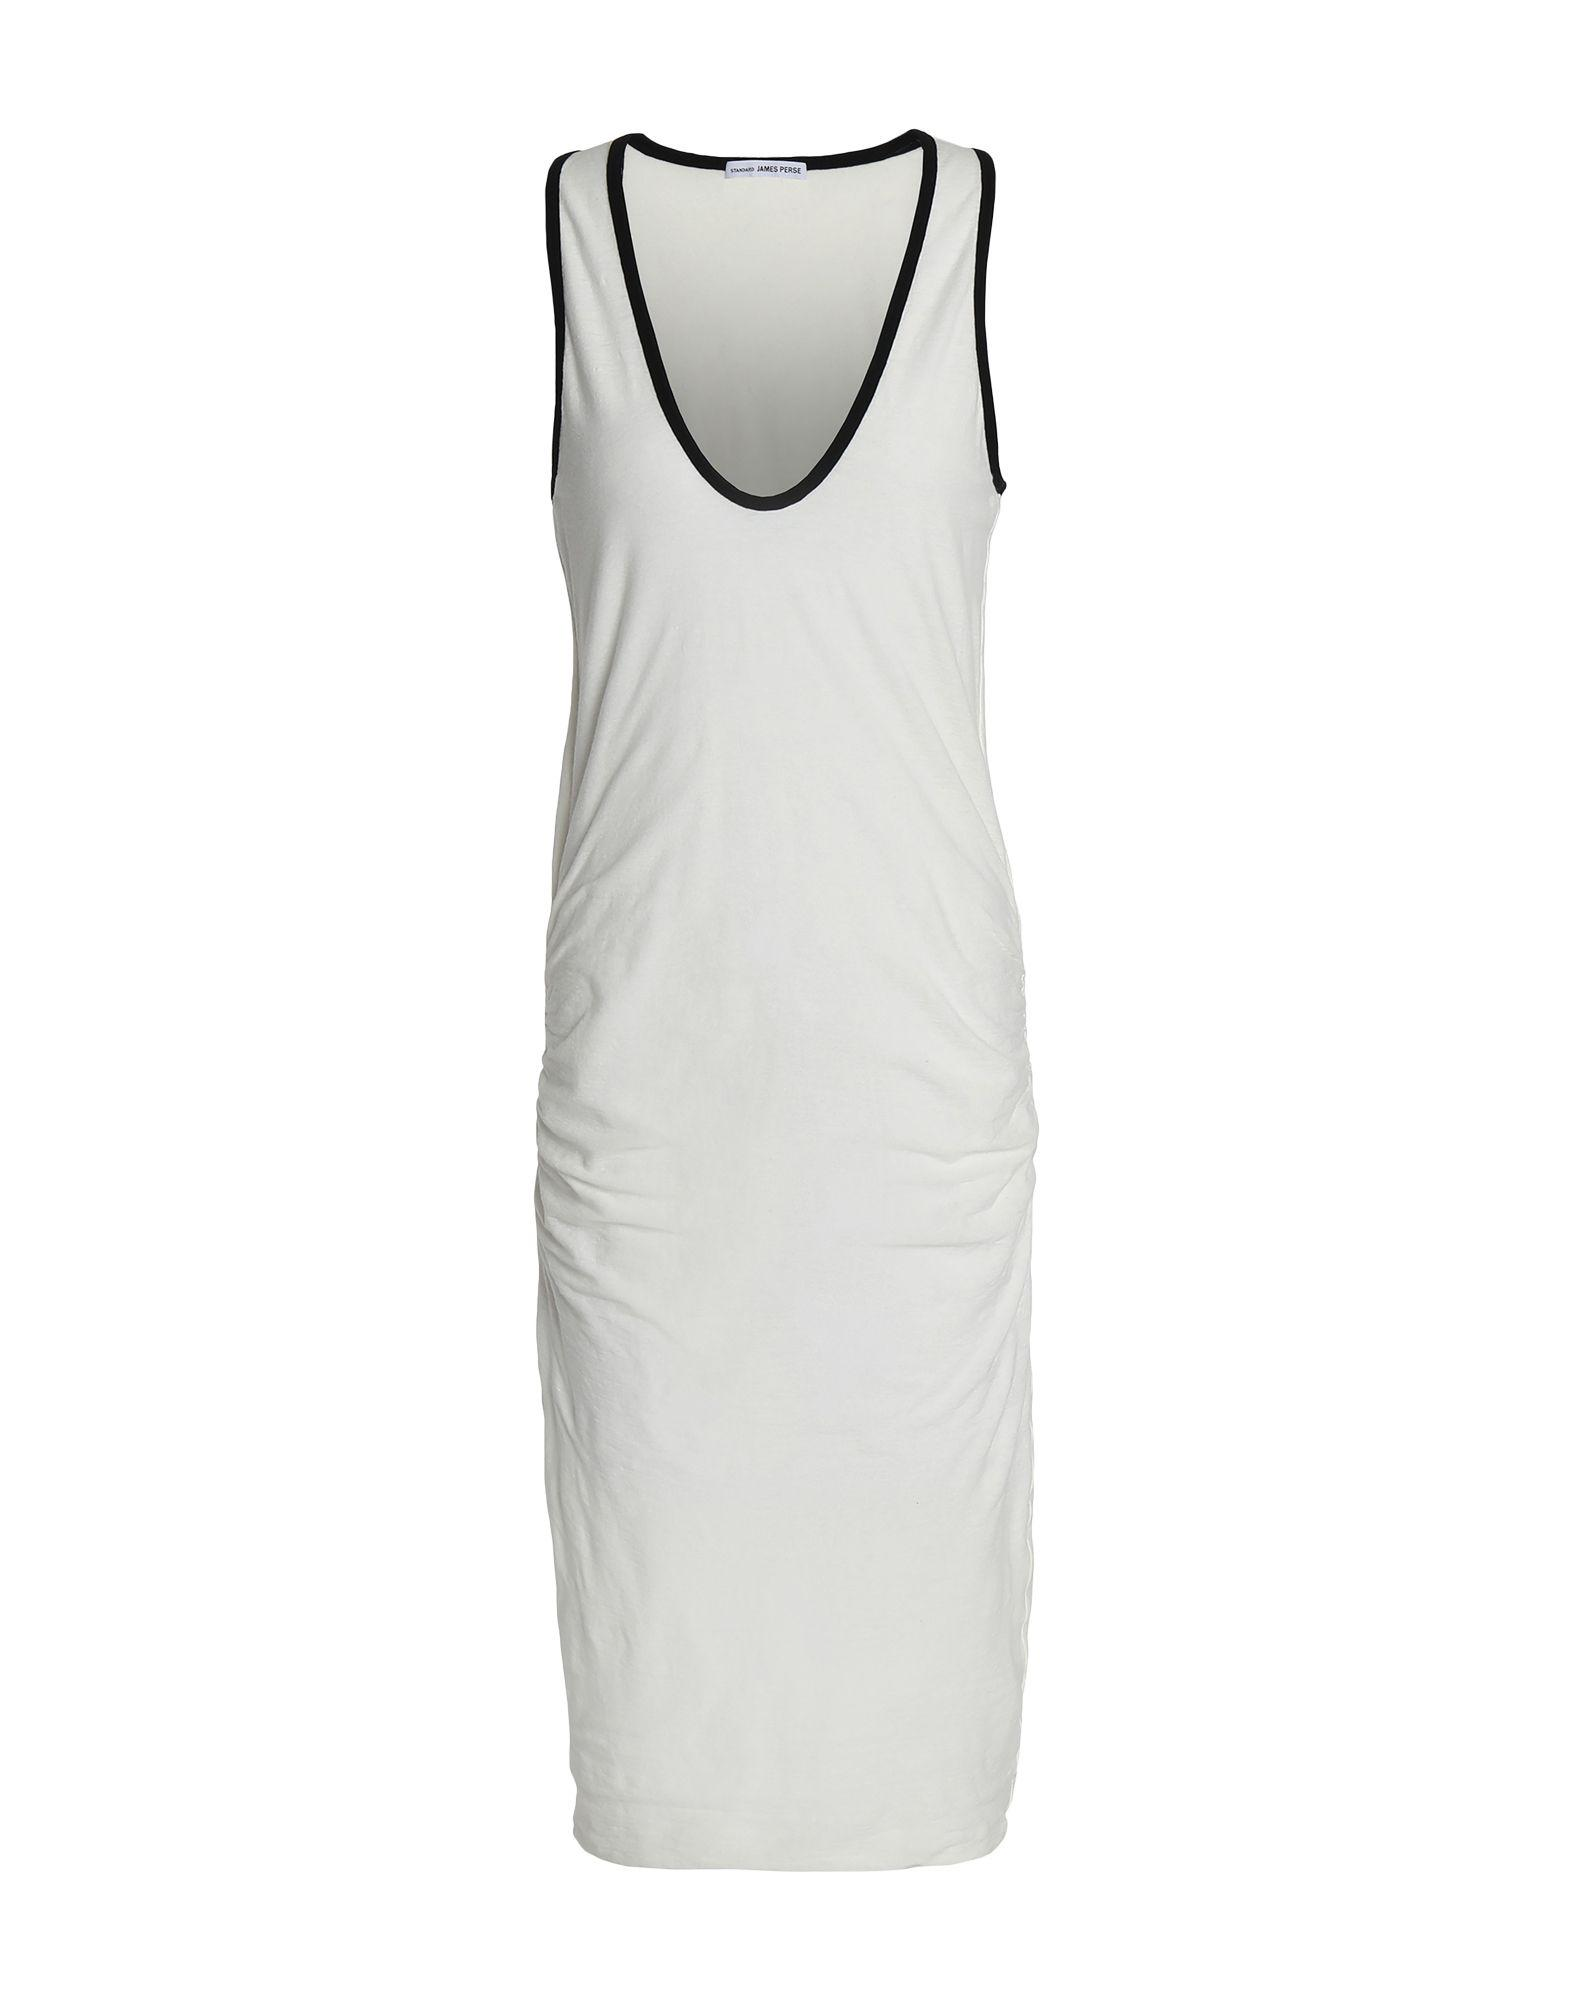 74f1aa52d29 James Perse 3 4 Length Dress in White - Save 27% - Lyst